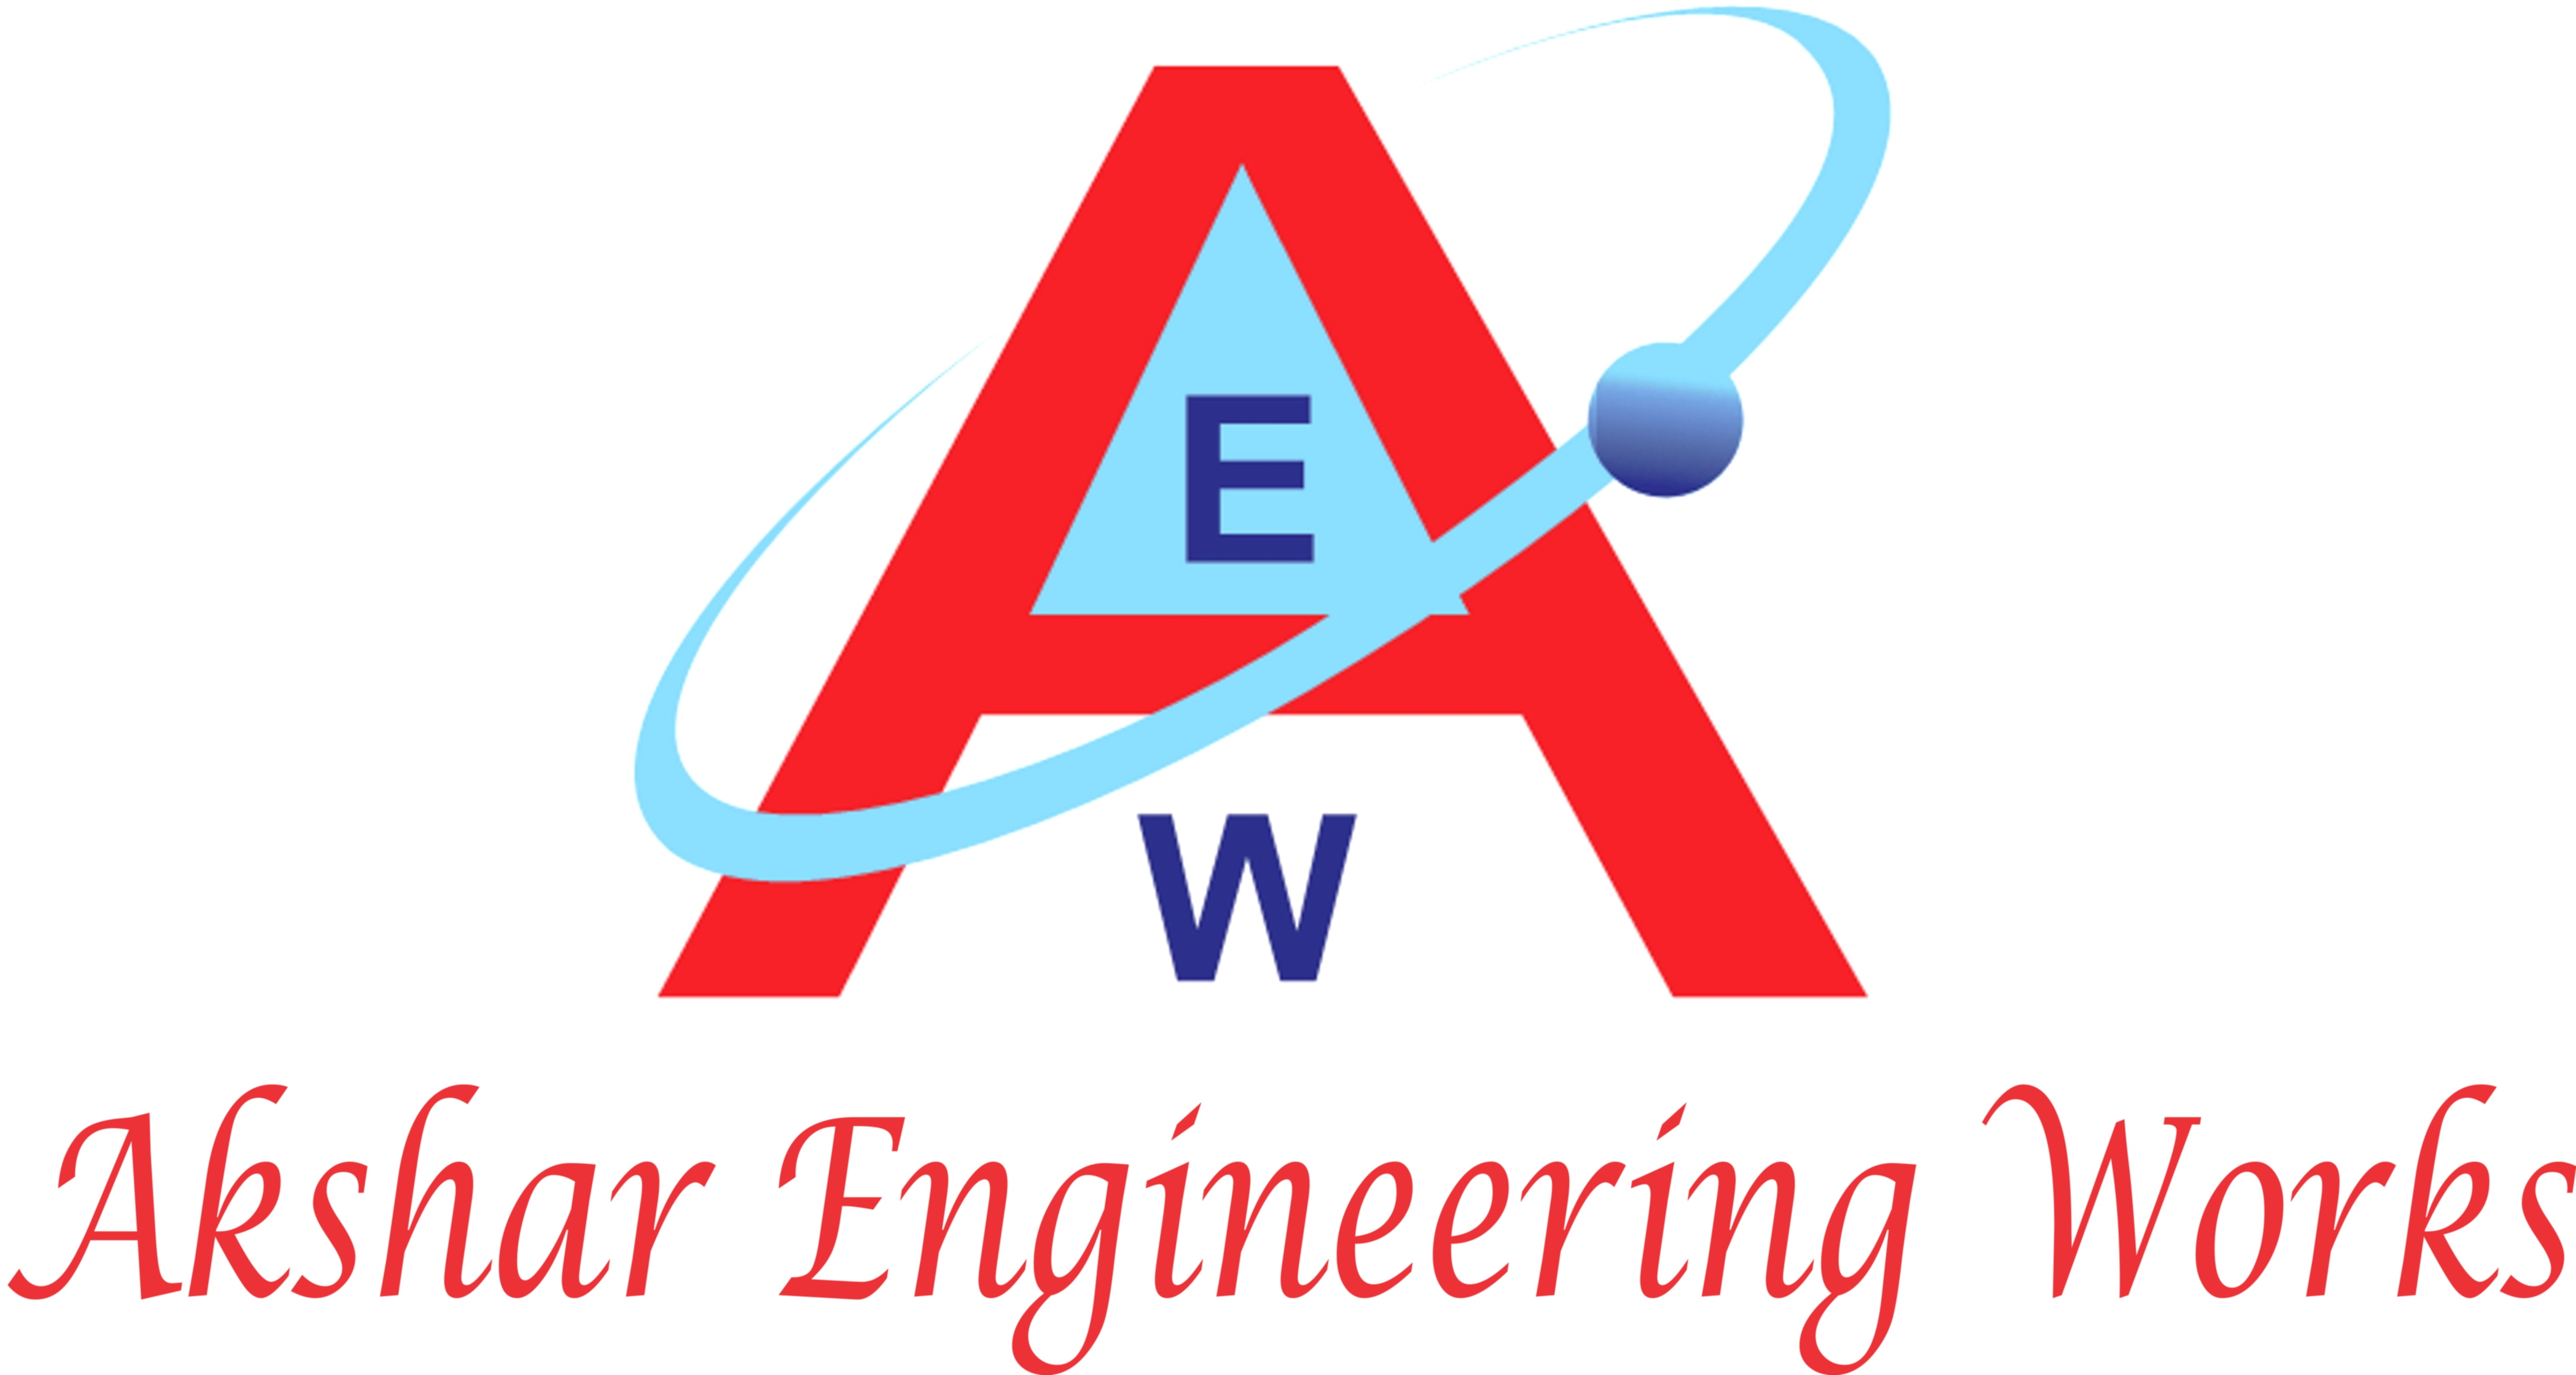 Pharmaceutical Machinery - Akshar Engineering Works